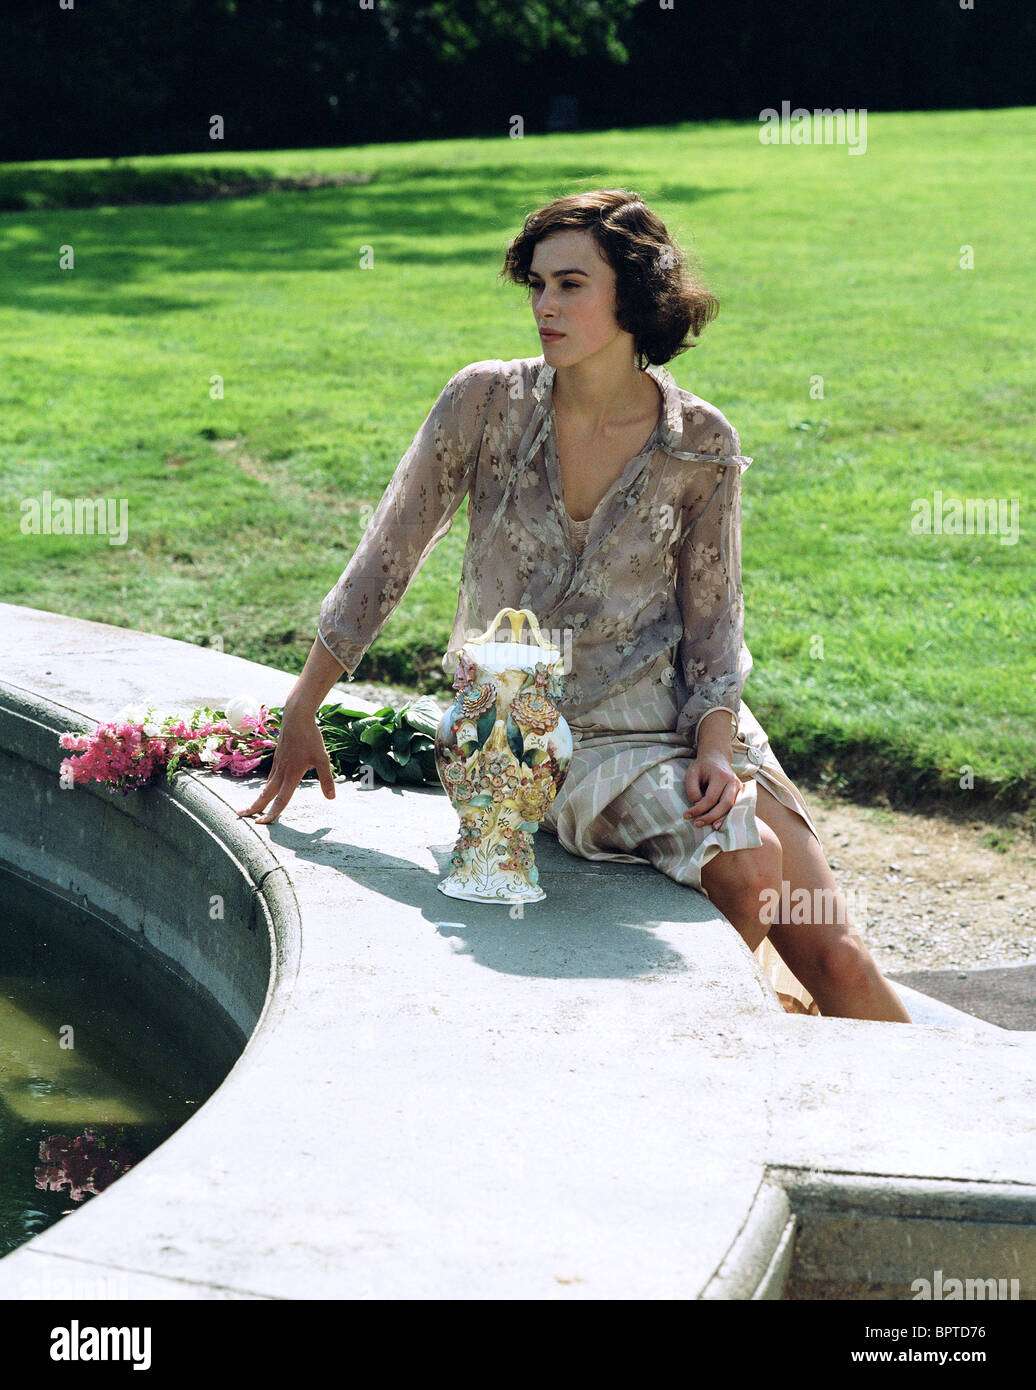 KEIRA KNIGHTLEY ATONEMENT (2007) - Stock Image